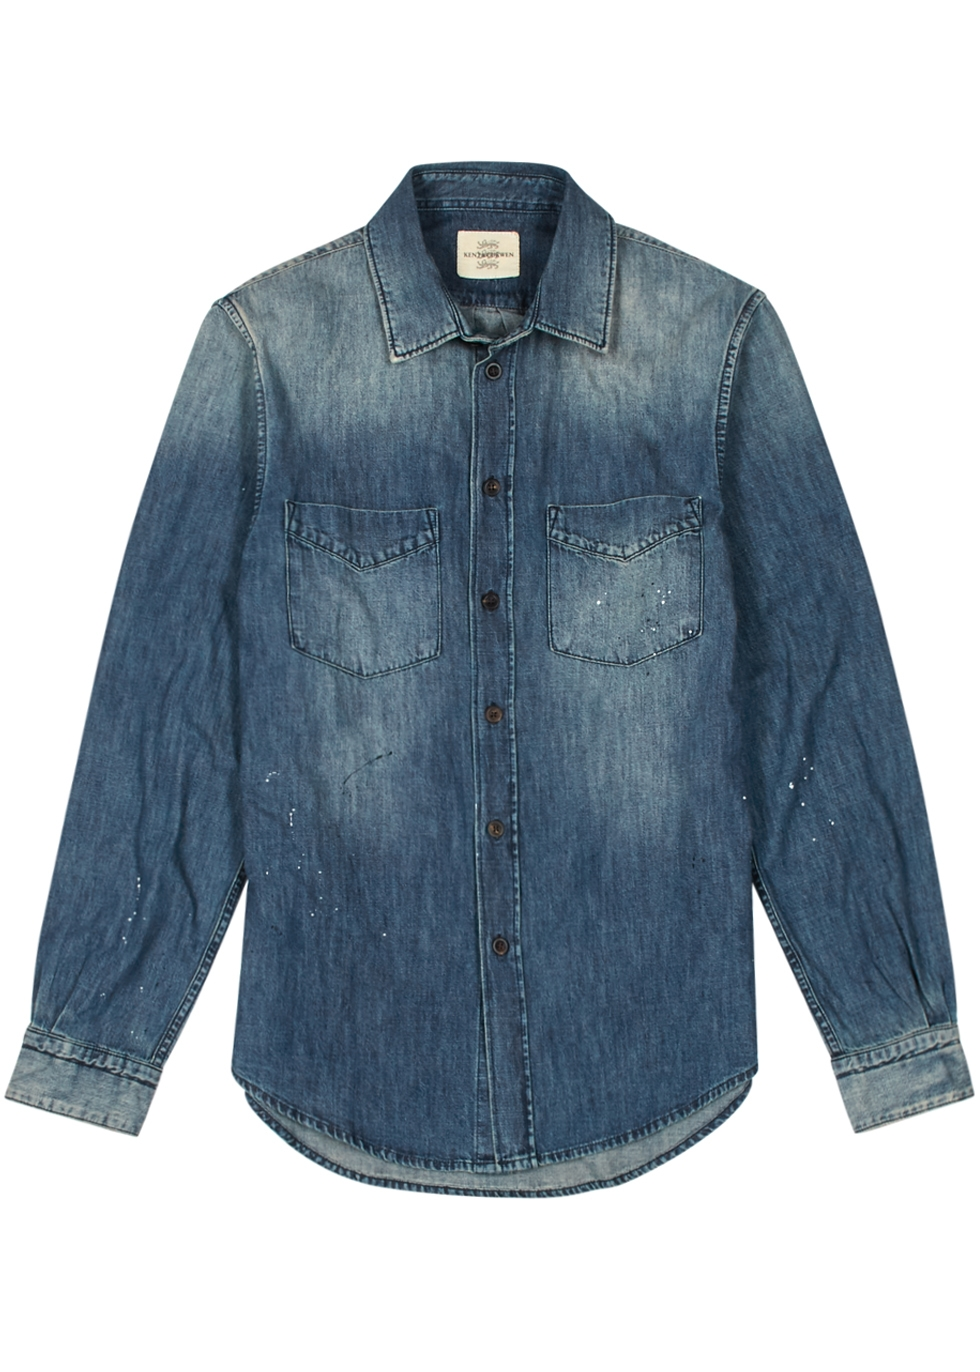 KENT & CURWEN KNOLE DISTRESSED DENIM SHIRT